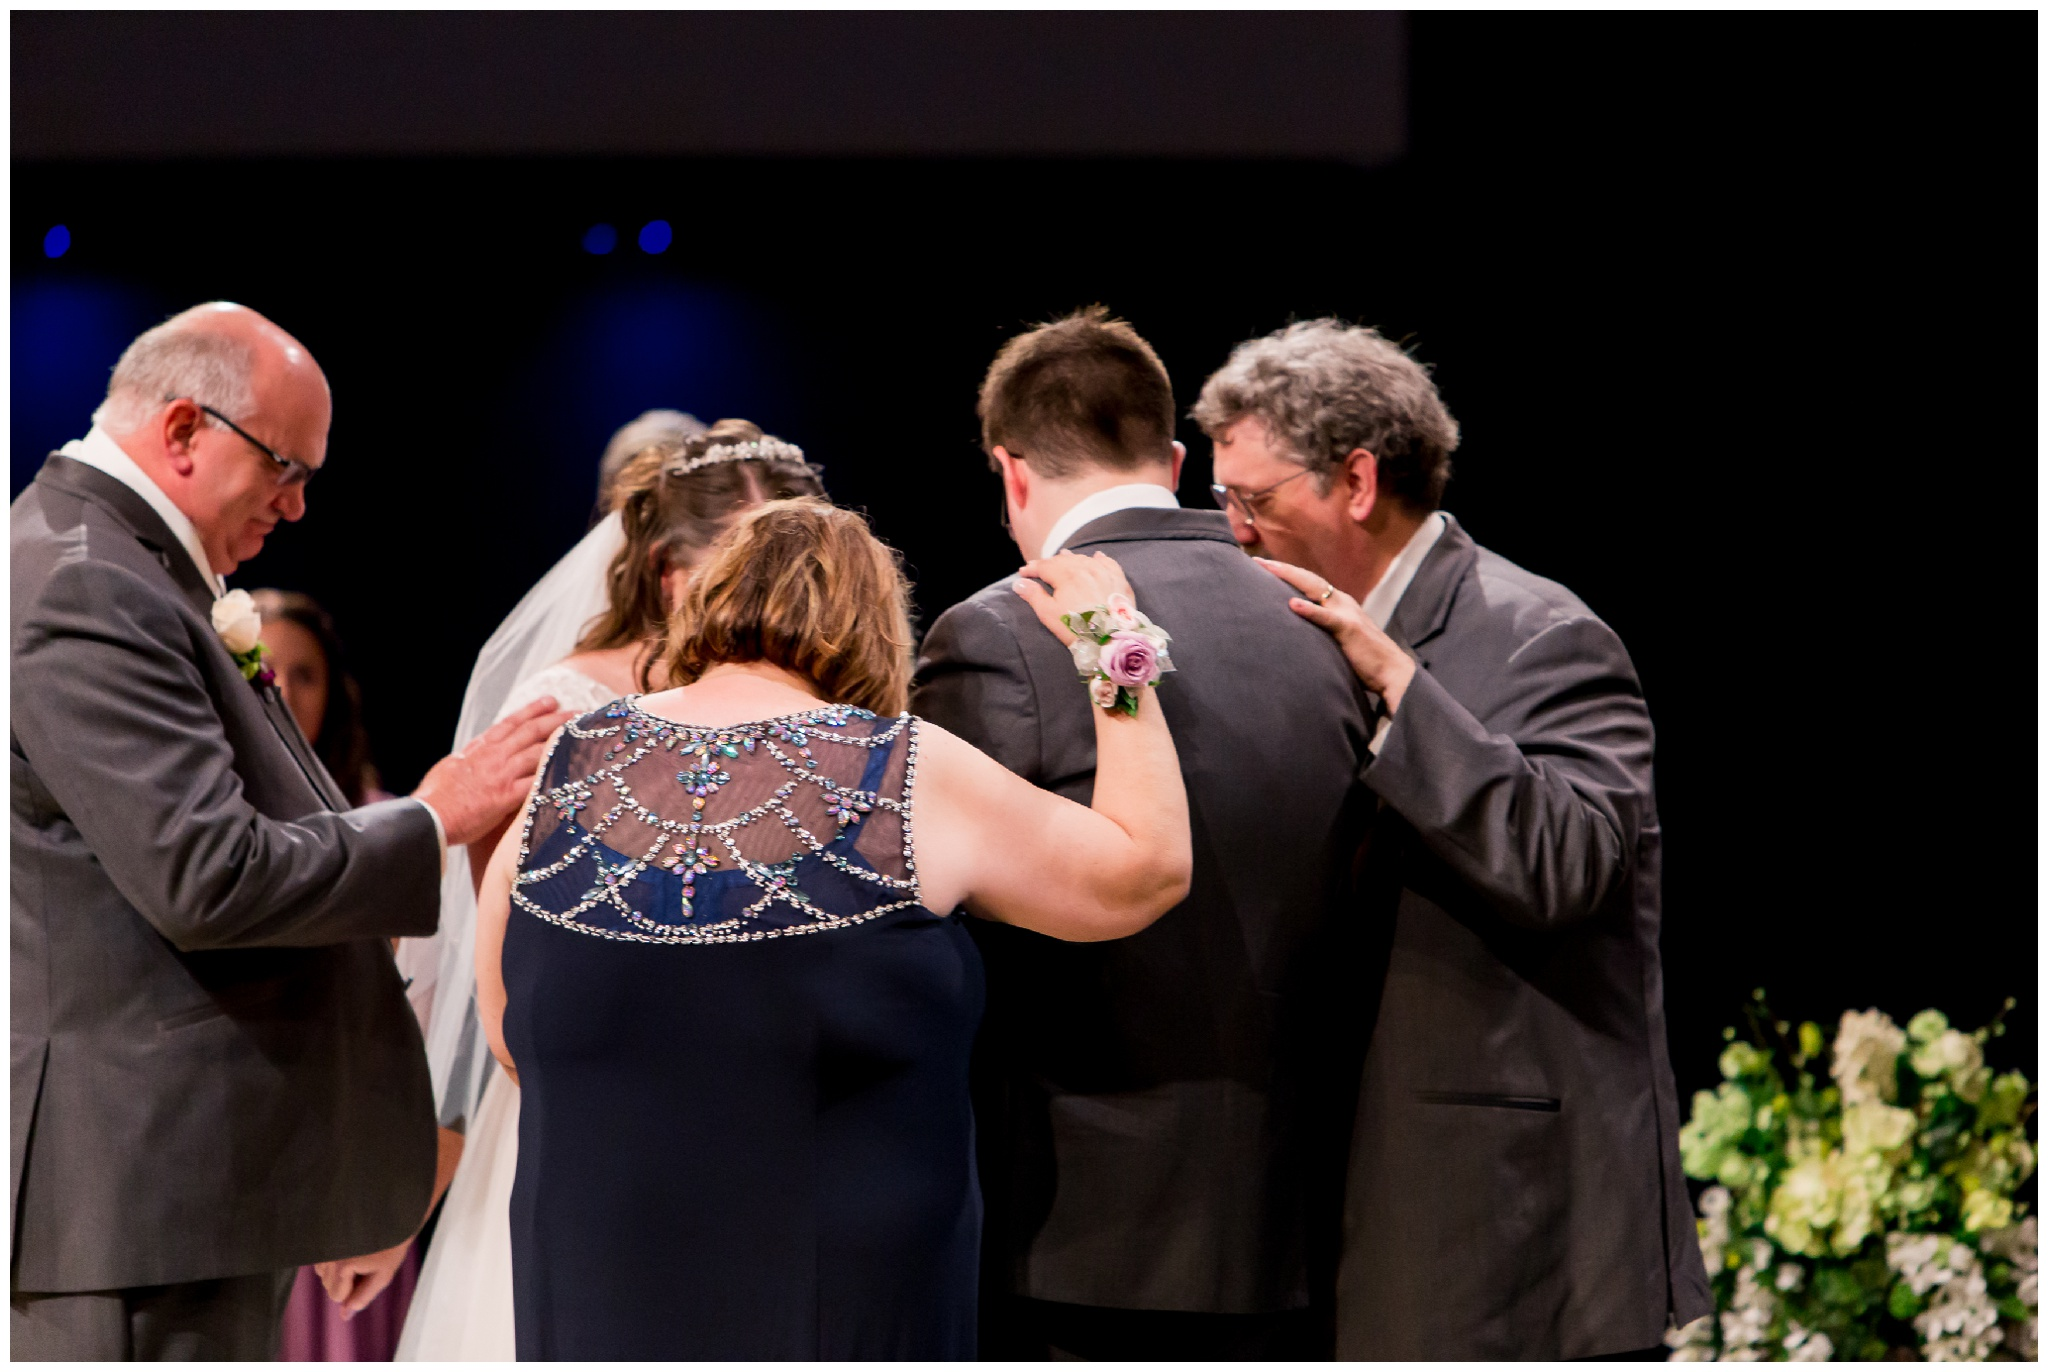 bride and groom's parents pray over couple during wedding ceremony at Crossroads Community Church in Kokomo Indiana